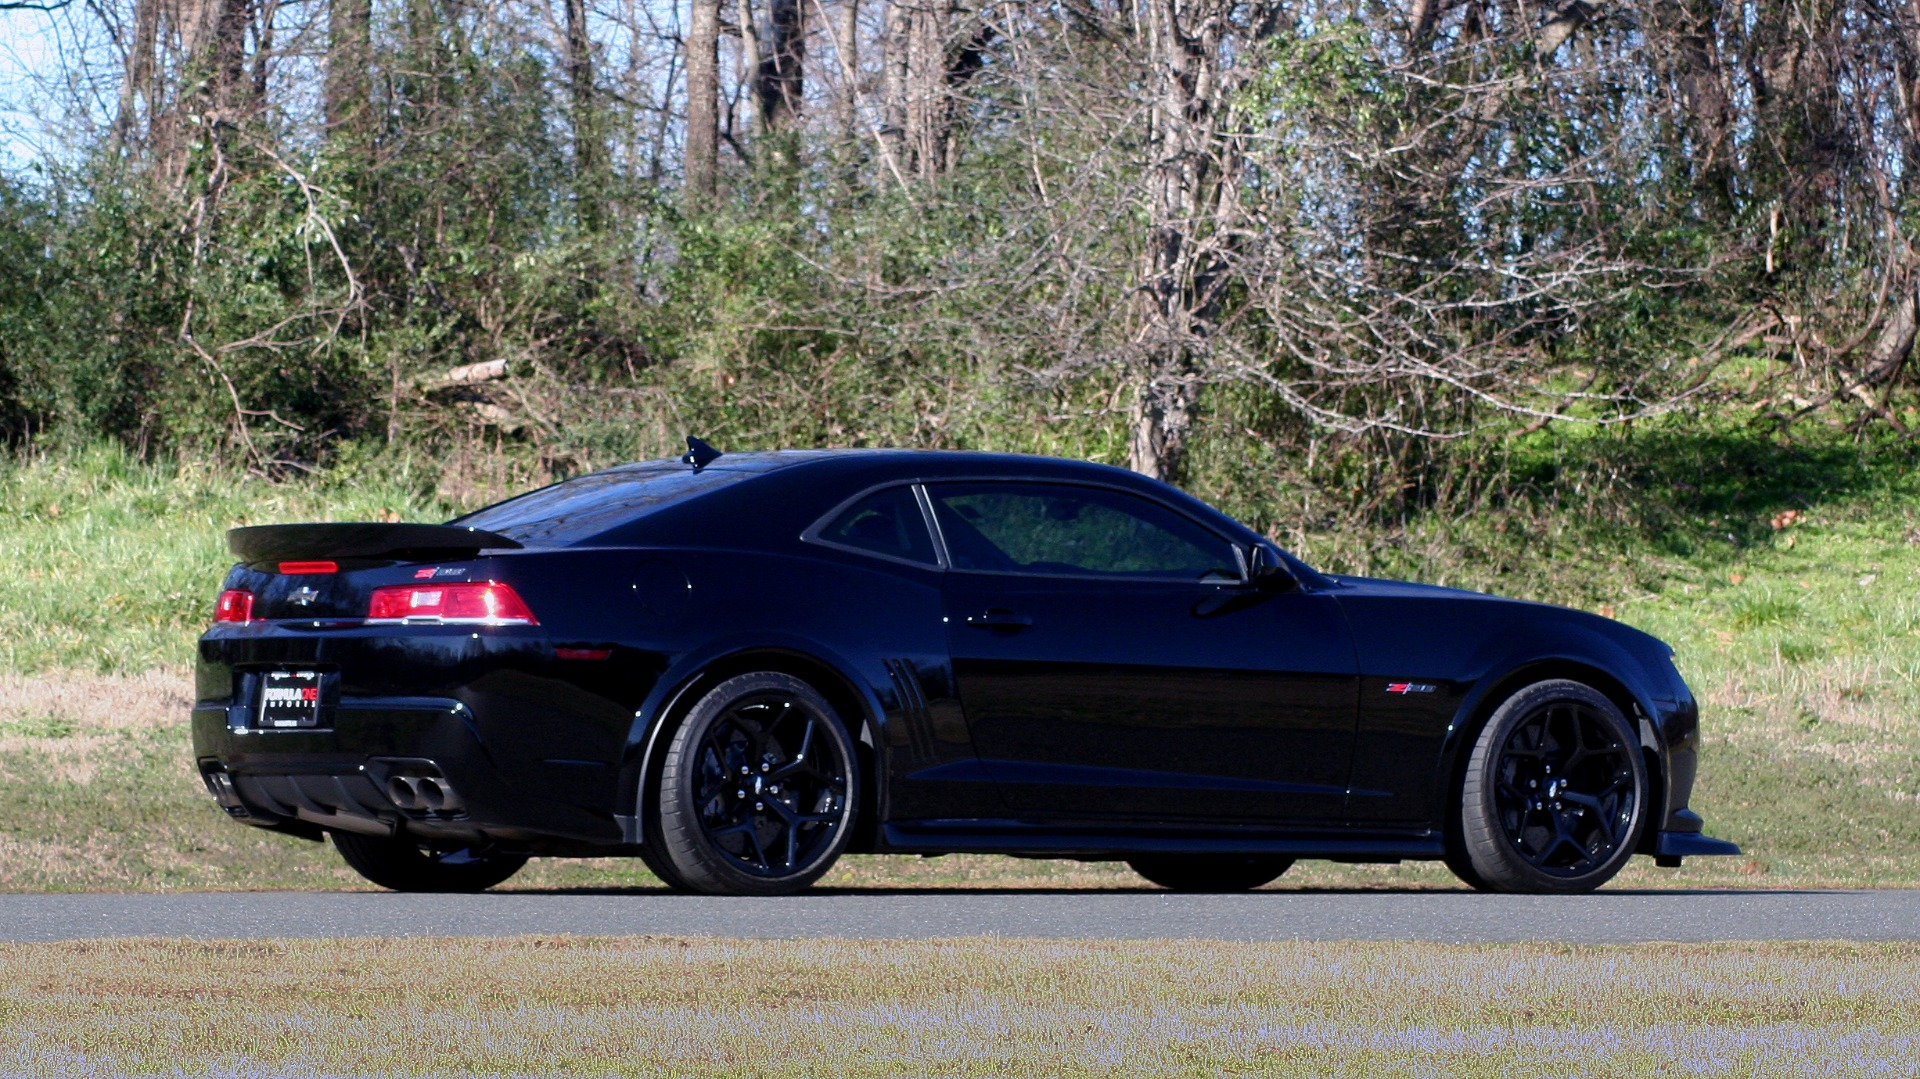 Used 2014 Chevrolet CAMARO Z/28 / 427 7.0L V8 505HP / RADIO / AIR CONDITIONING for sale Sold at Formula Imports in Charlotte NC 28227 11